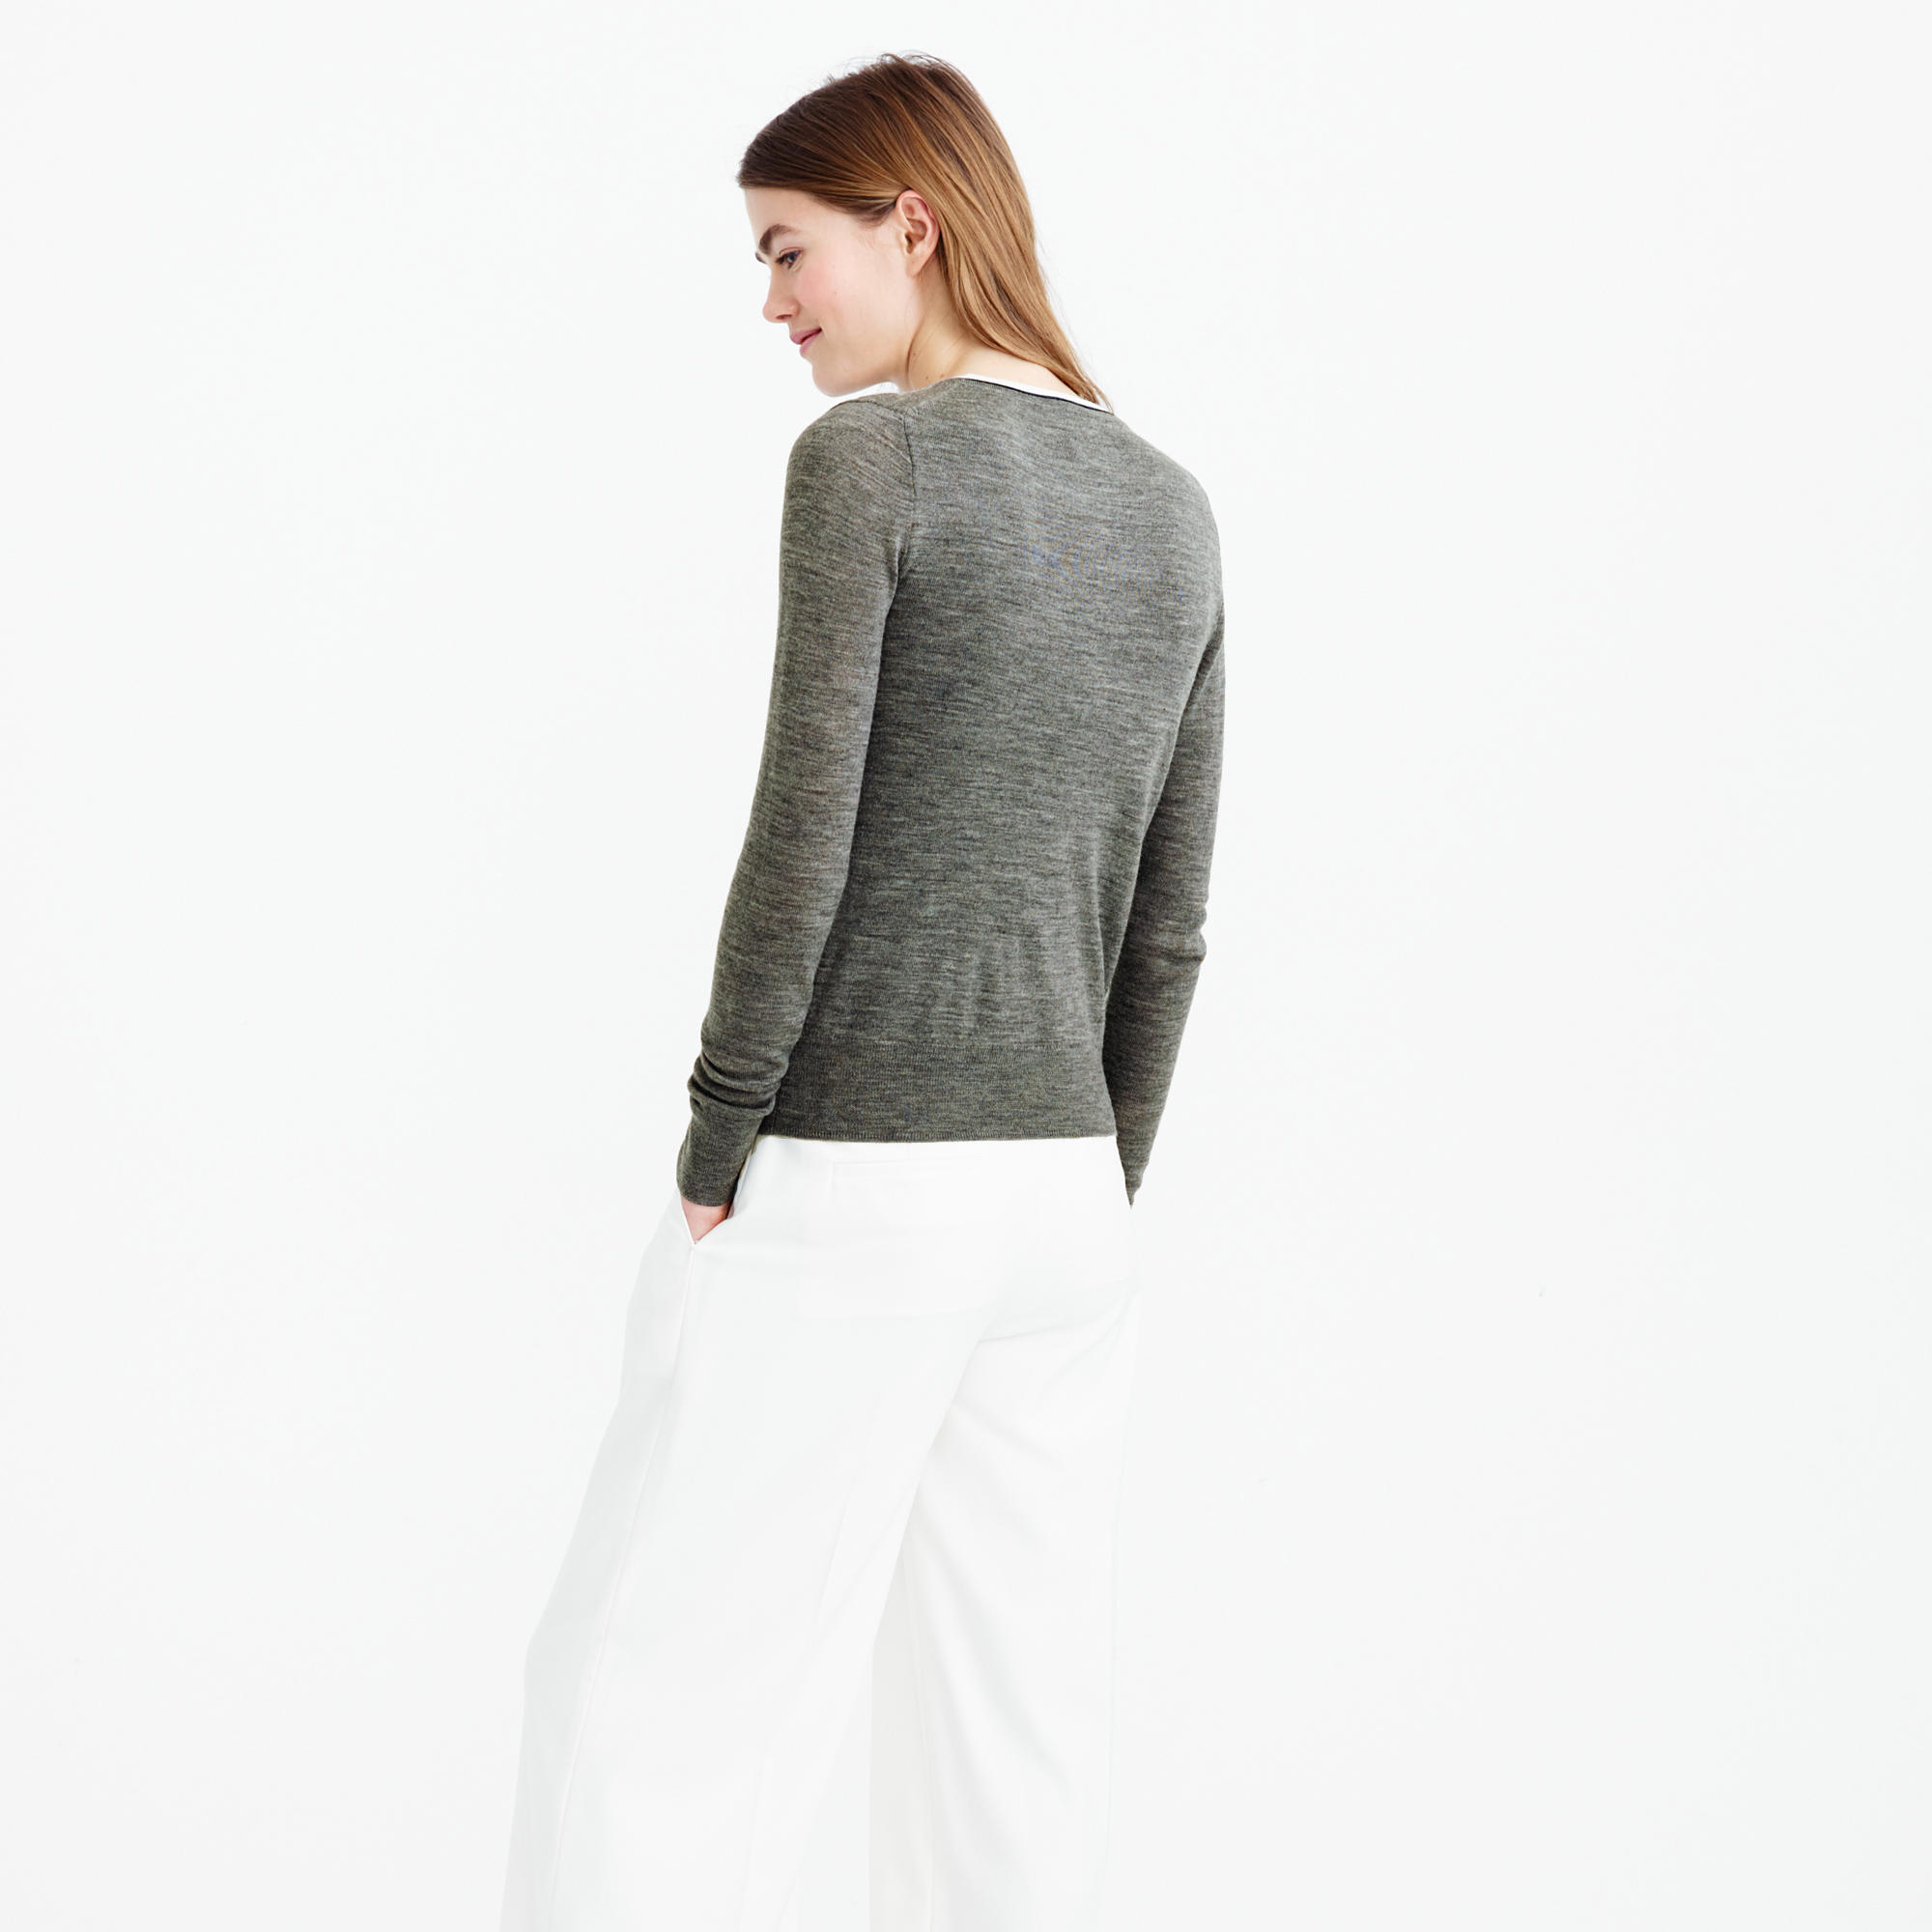 J.crew Tipped Lightweight Wool Jackie Cardigan Sweater in Green | Lyst